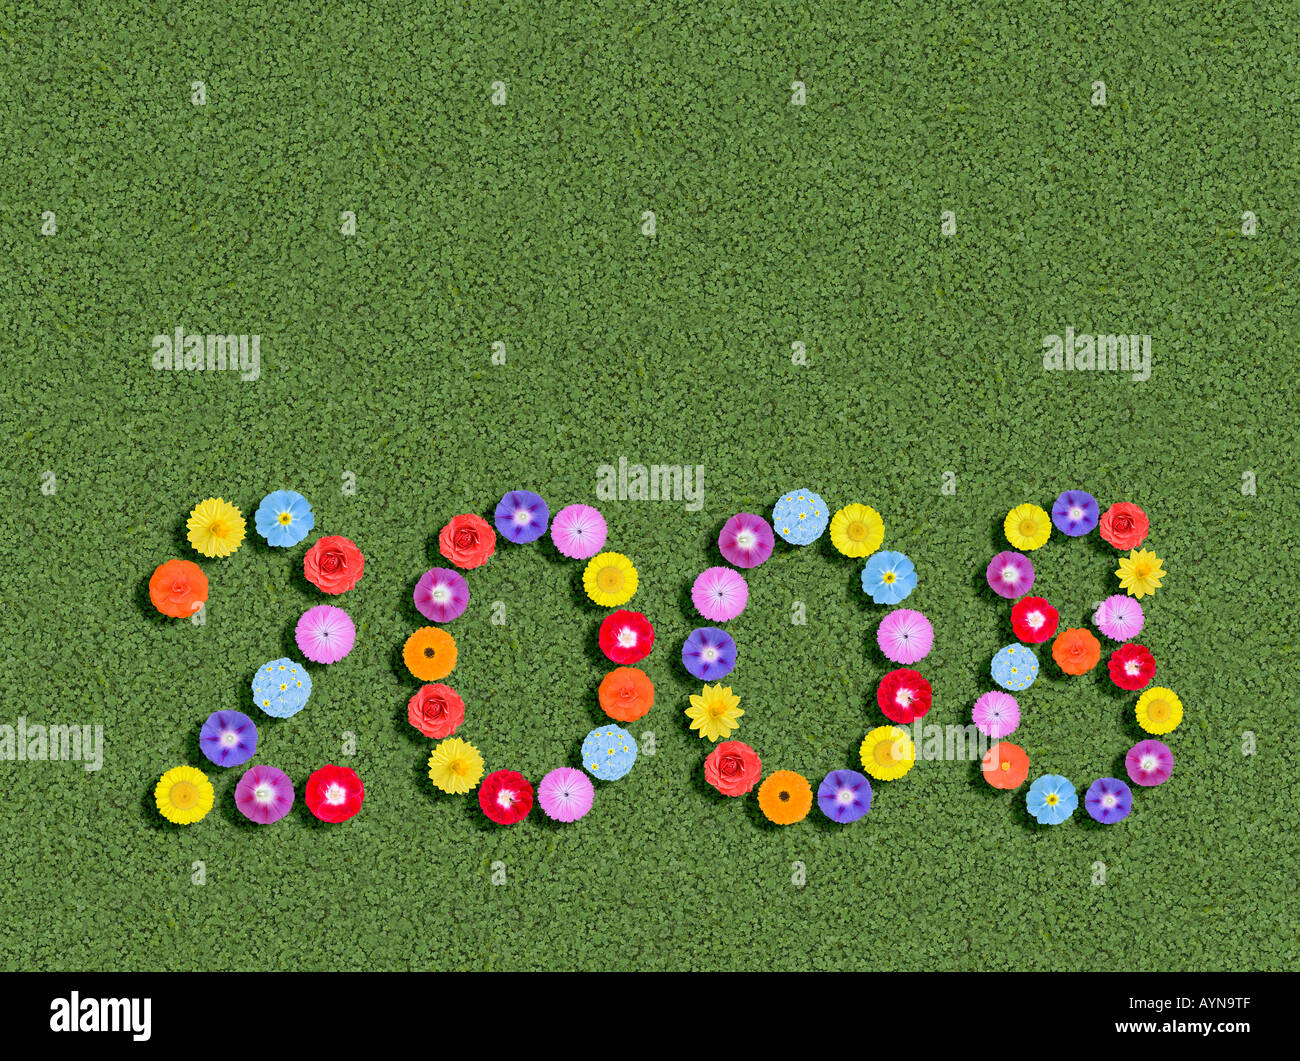 year written with flowers spelled out prewritten edited - Stock Image